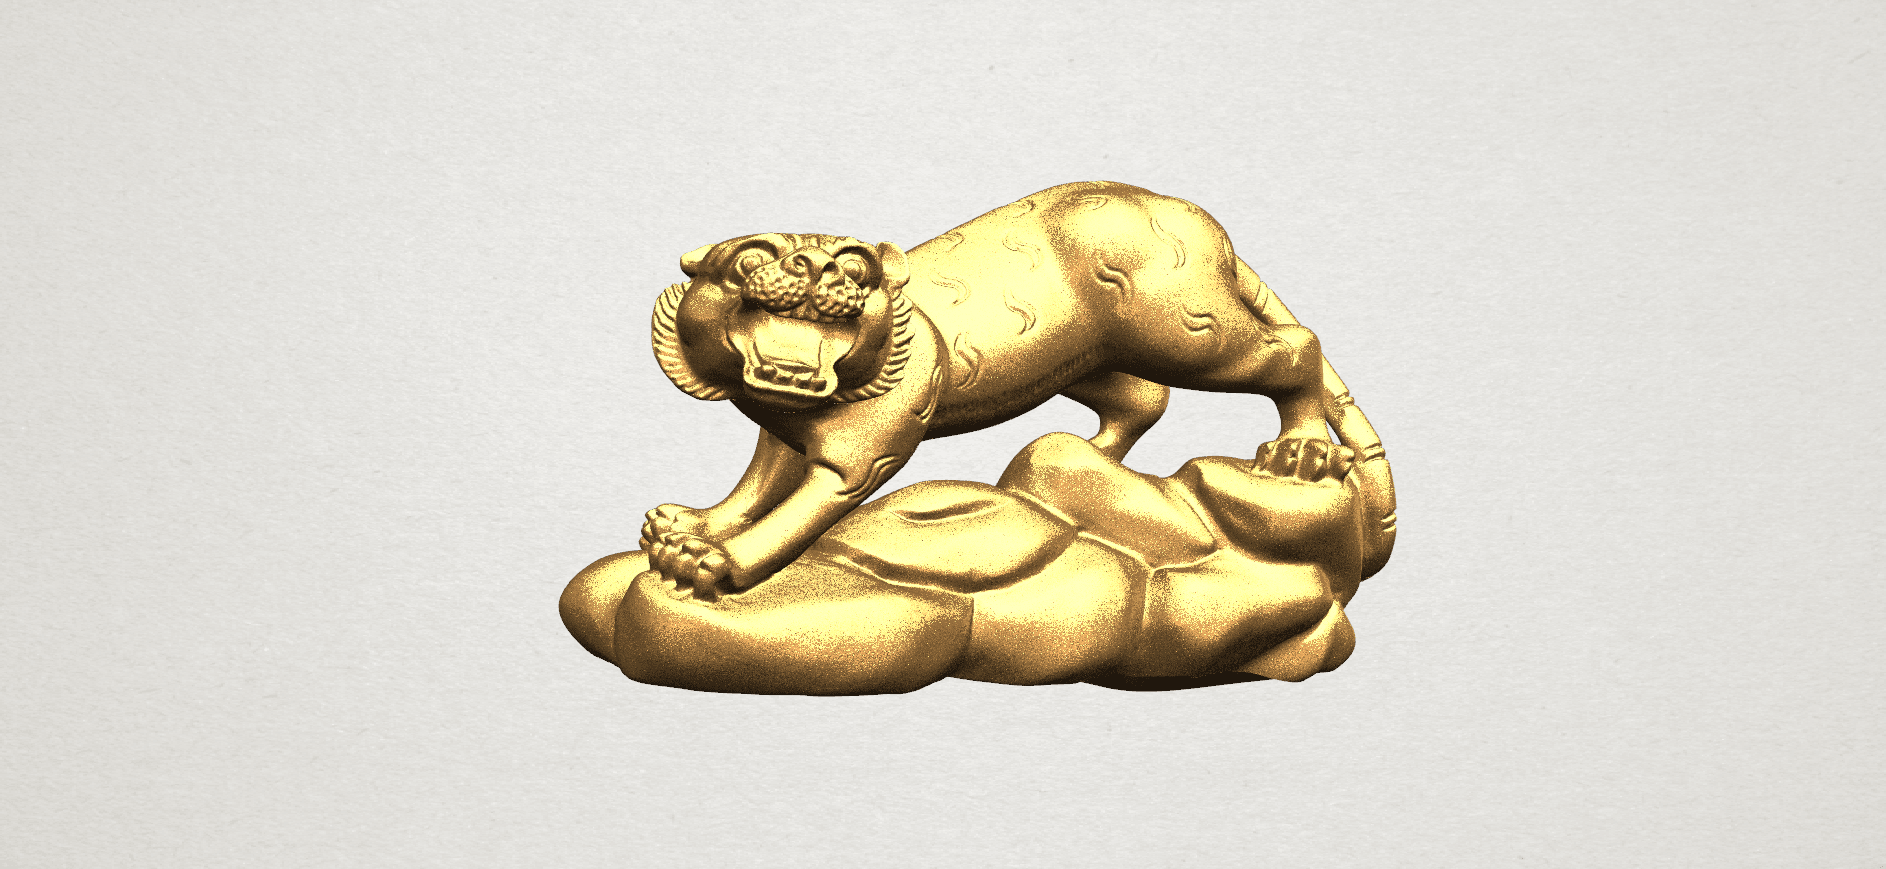 Chinese Horoscope03-03.png Download free STL file Chinese Horoscope 03 Tiger • 3D printer template, GeorgesNikkei